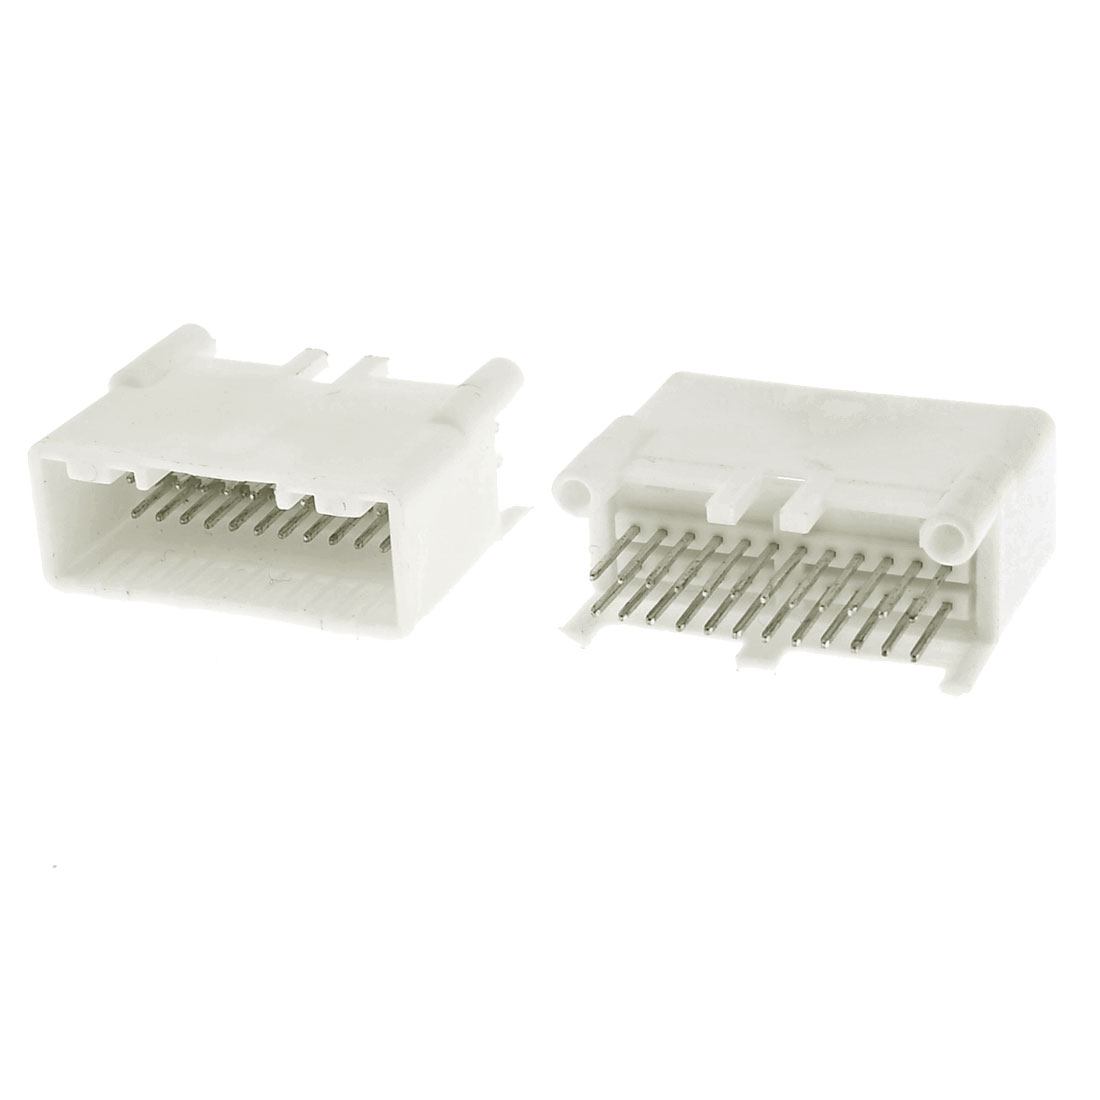 2pcs White Plastic Casing 20-Pin IDE Male Test Connector for Nissan Teana